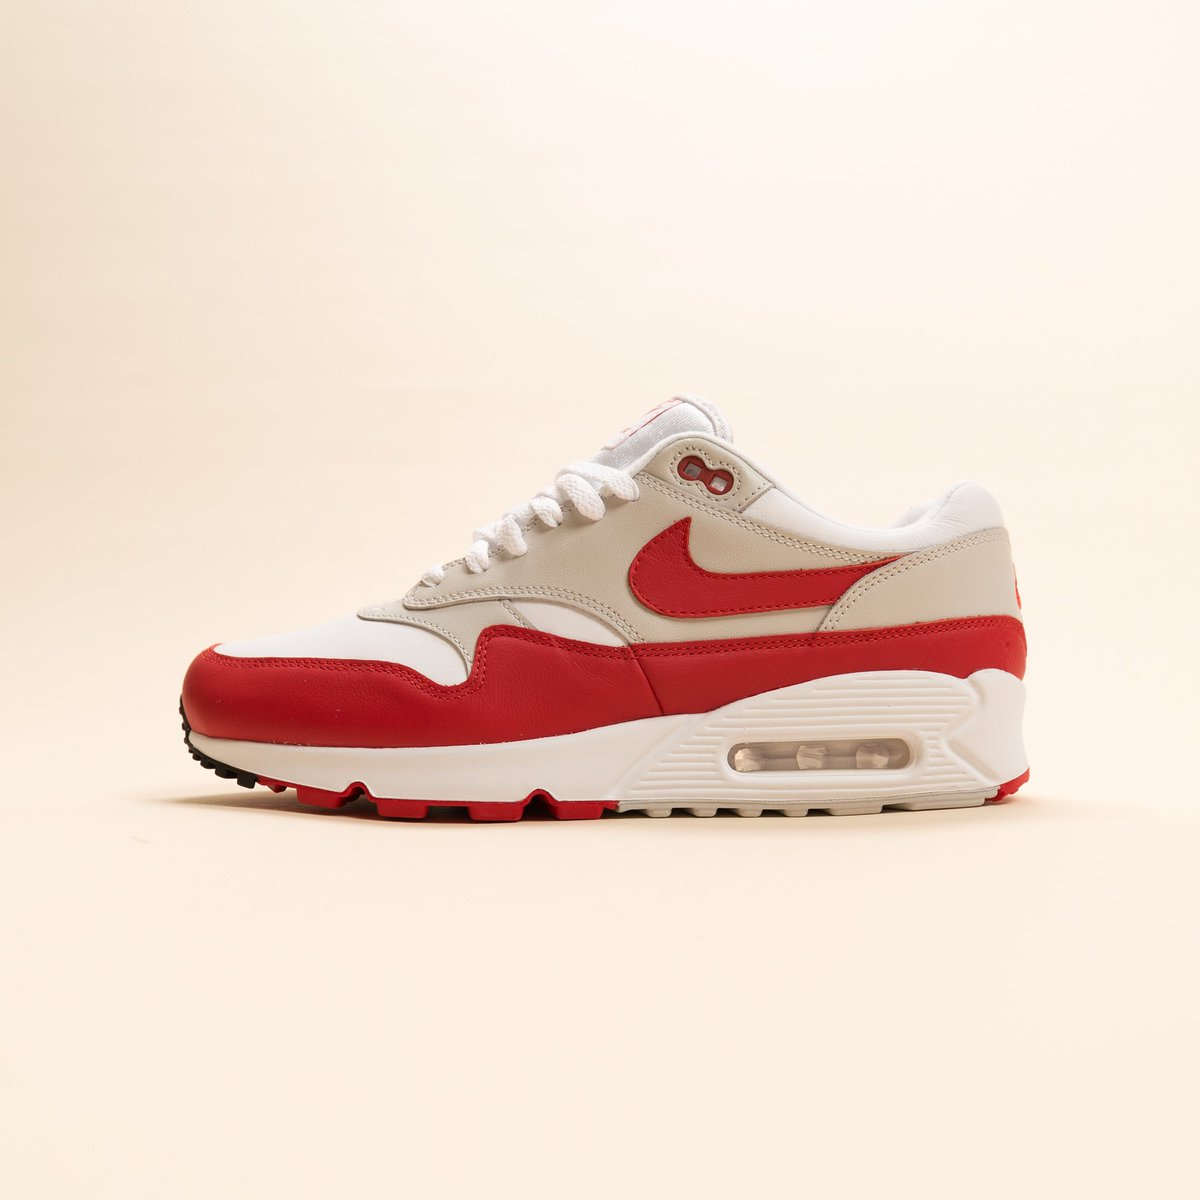 hot sale online c9e1d c10dd ... sale upper of a leather air max 1 og with the tooling of the air max